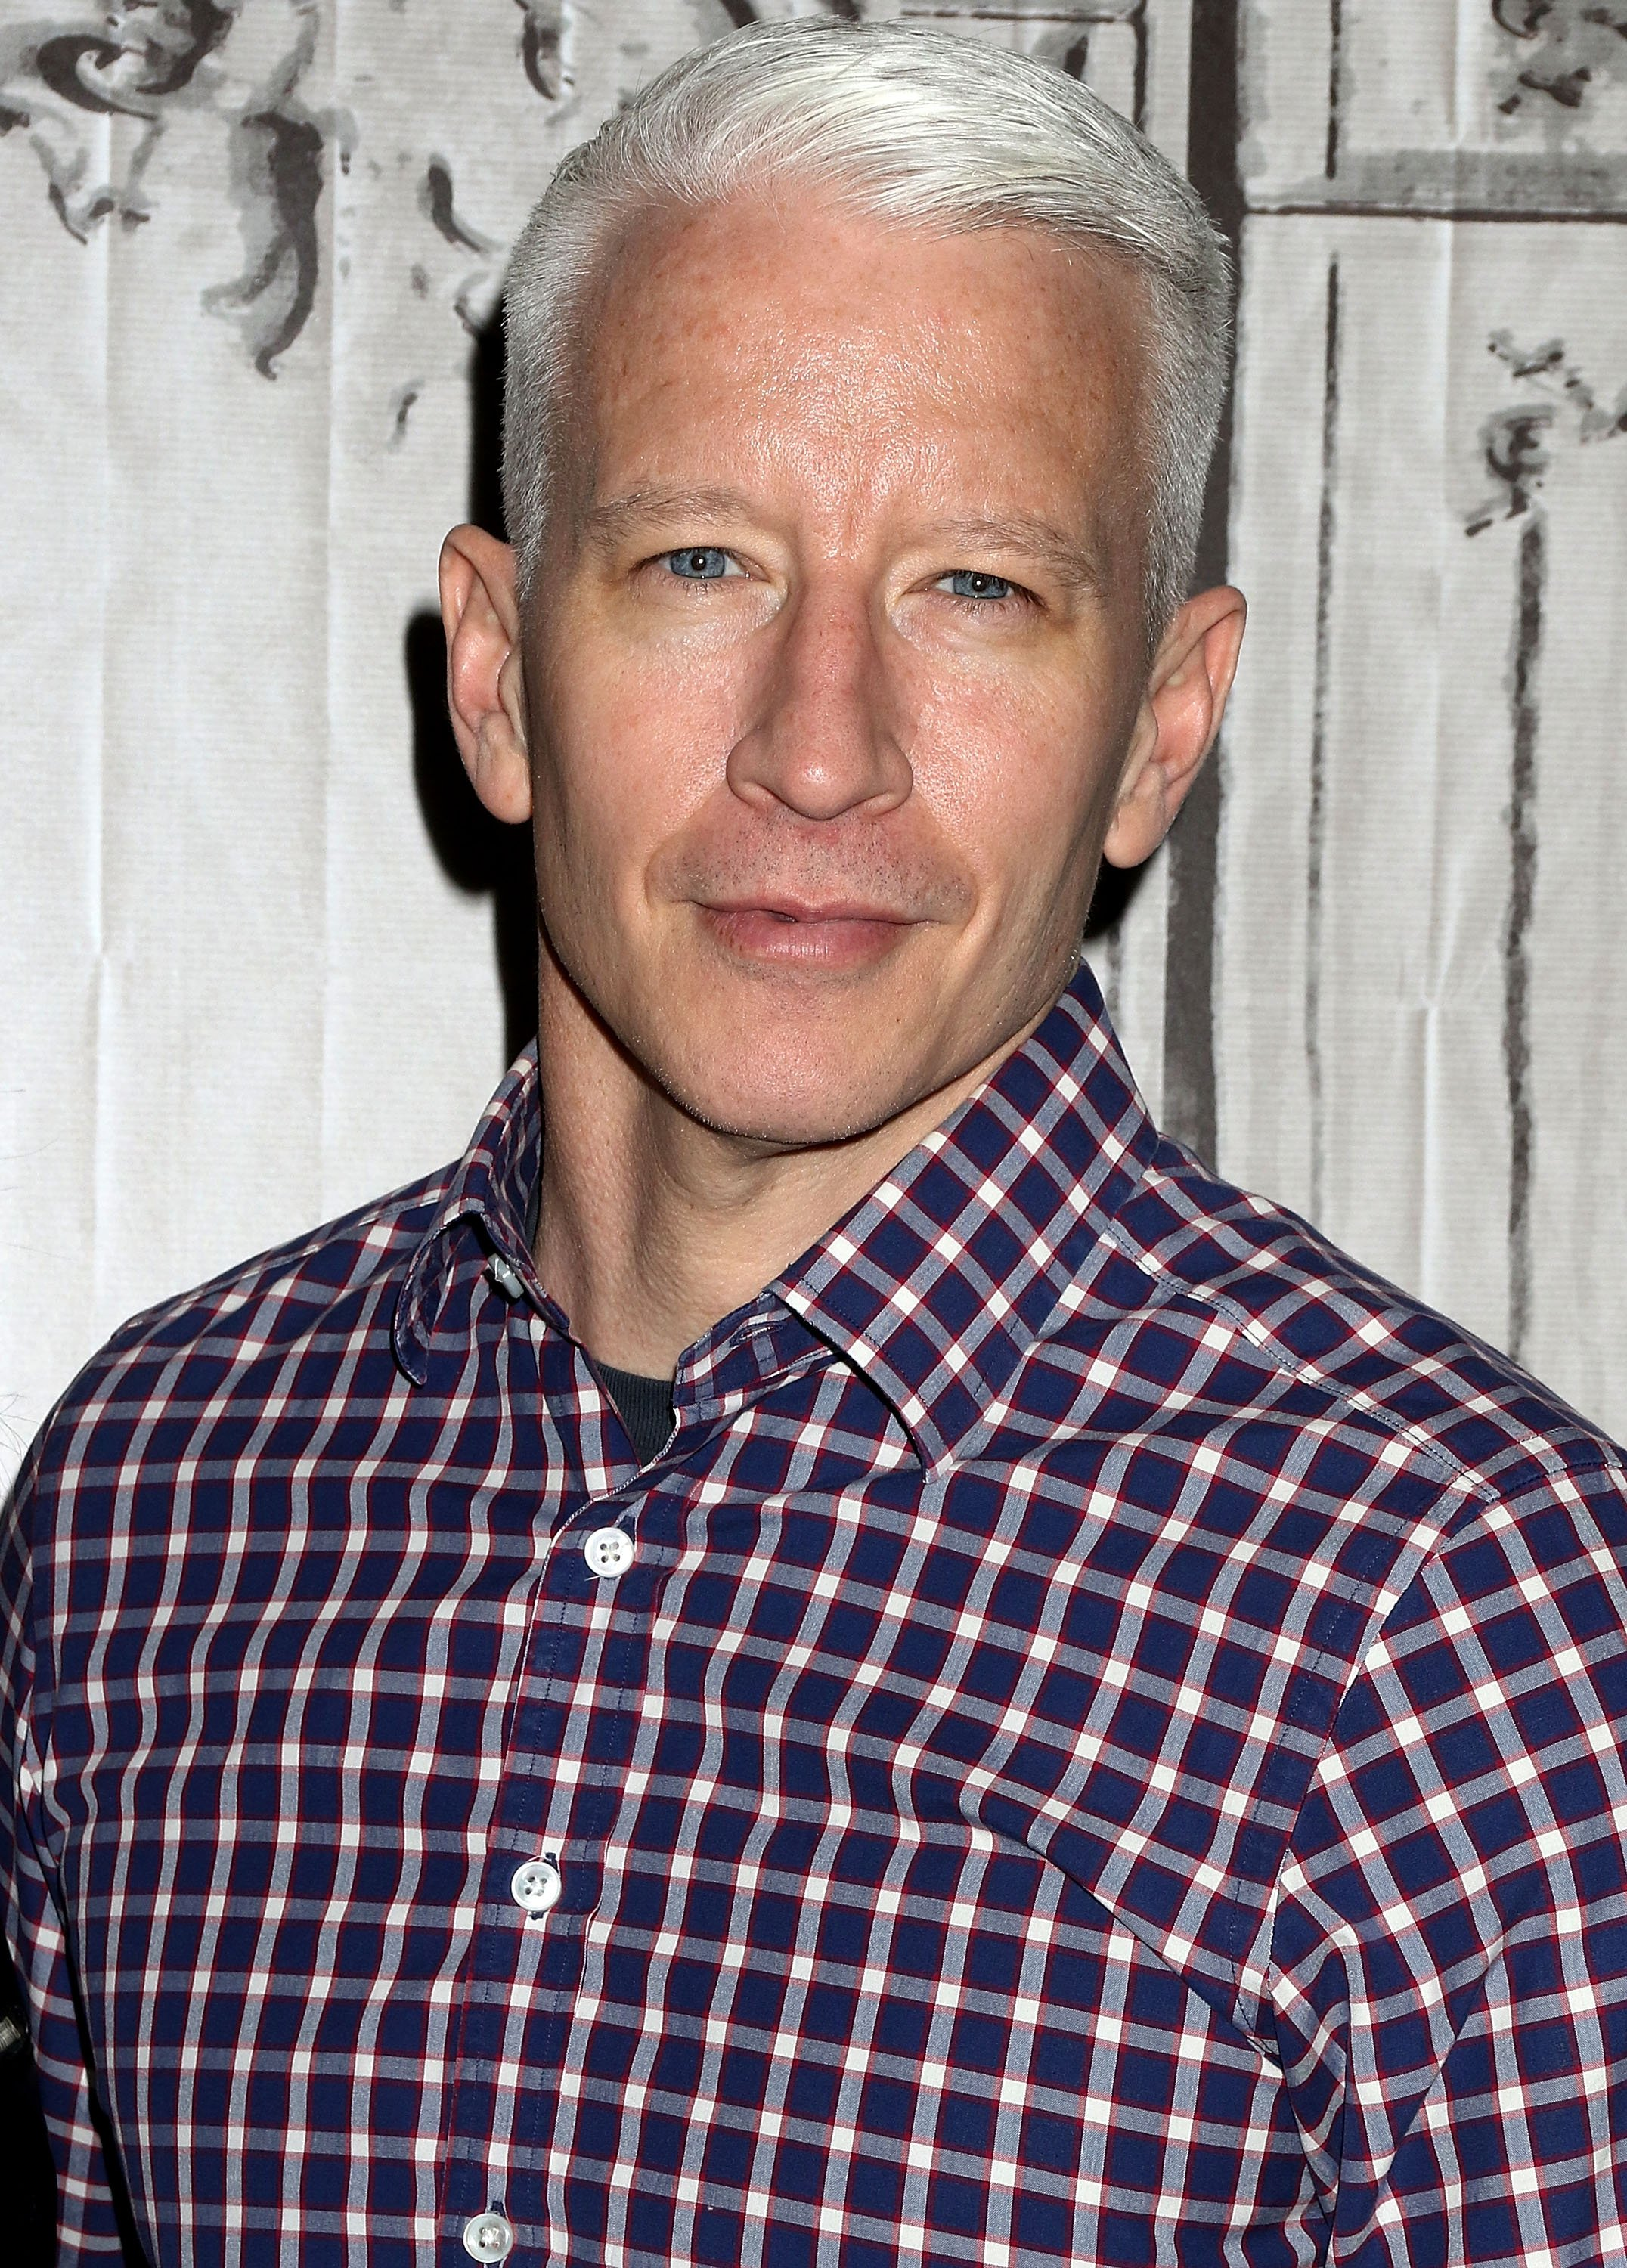 """Anderson Cooper attends AOL Build Speaker Series to discuss """"Nothing Left Unsaid"""" on April 15, 2016. 